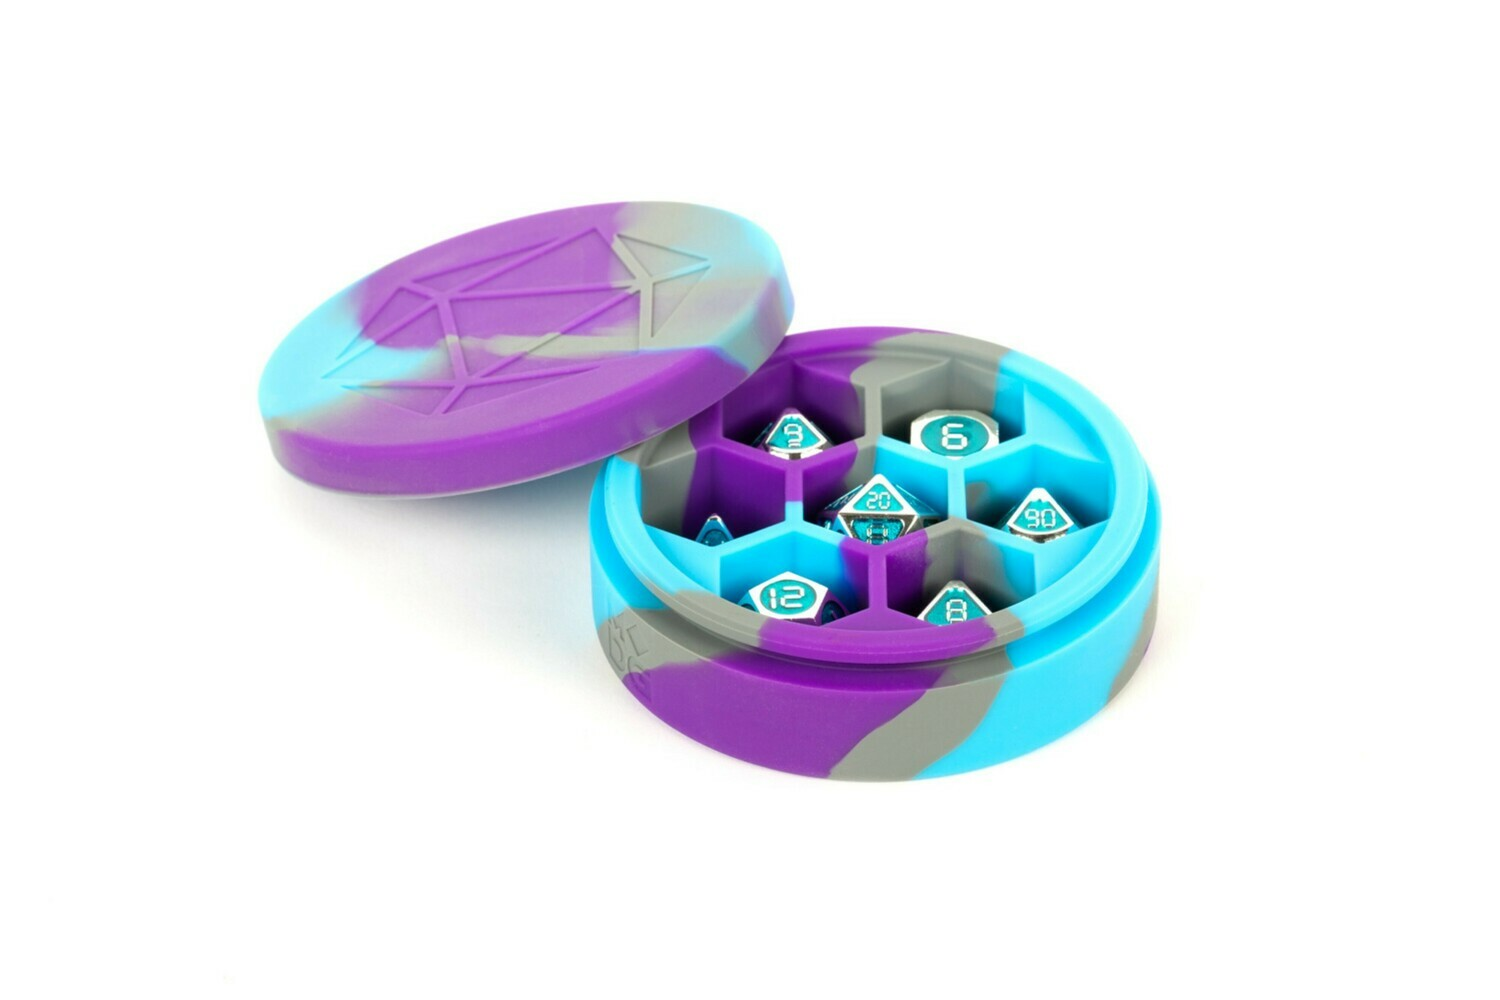 Silicone Round Dice Case Polyhedral Gaming Dice RPG Role Play Purple, Gray, Light Blue